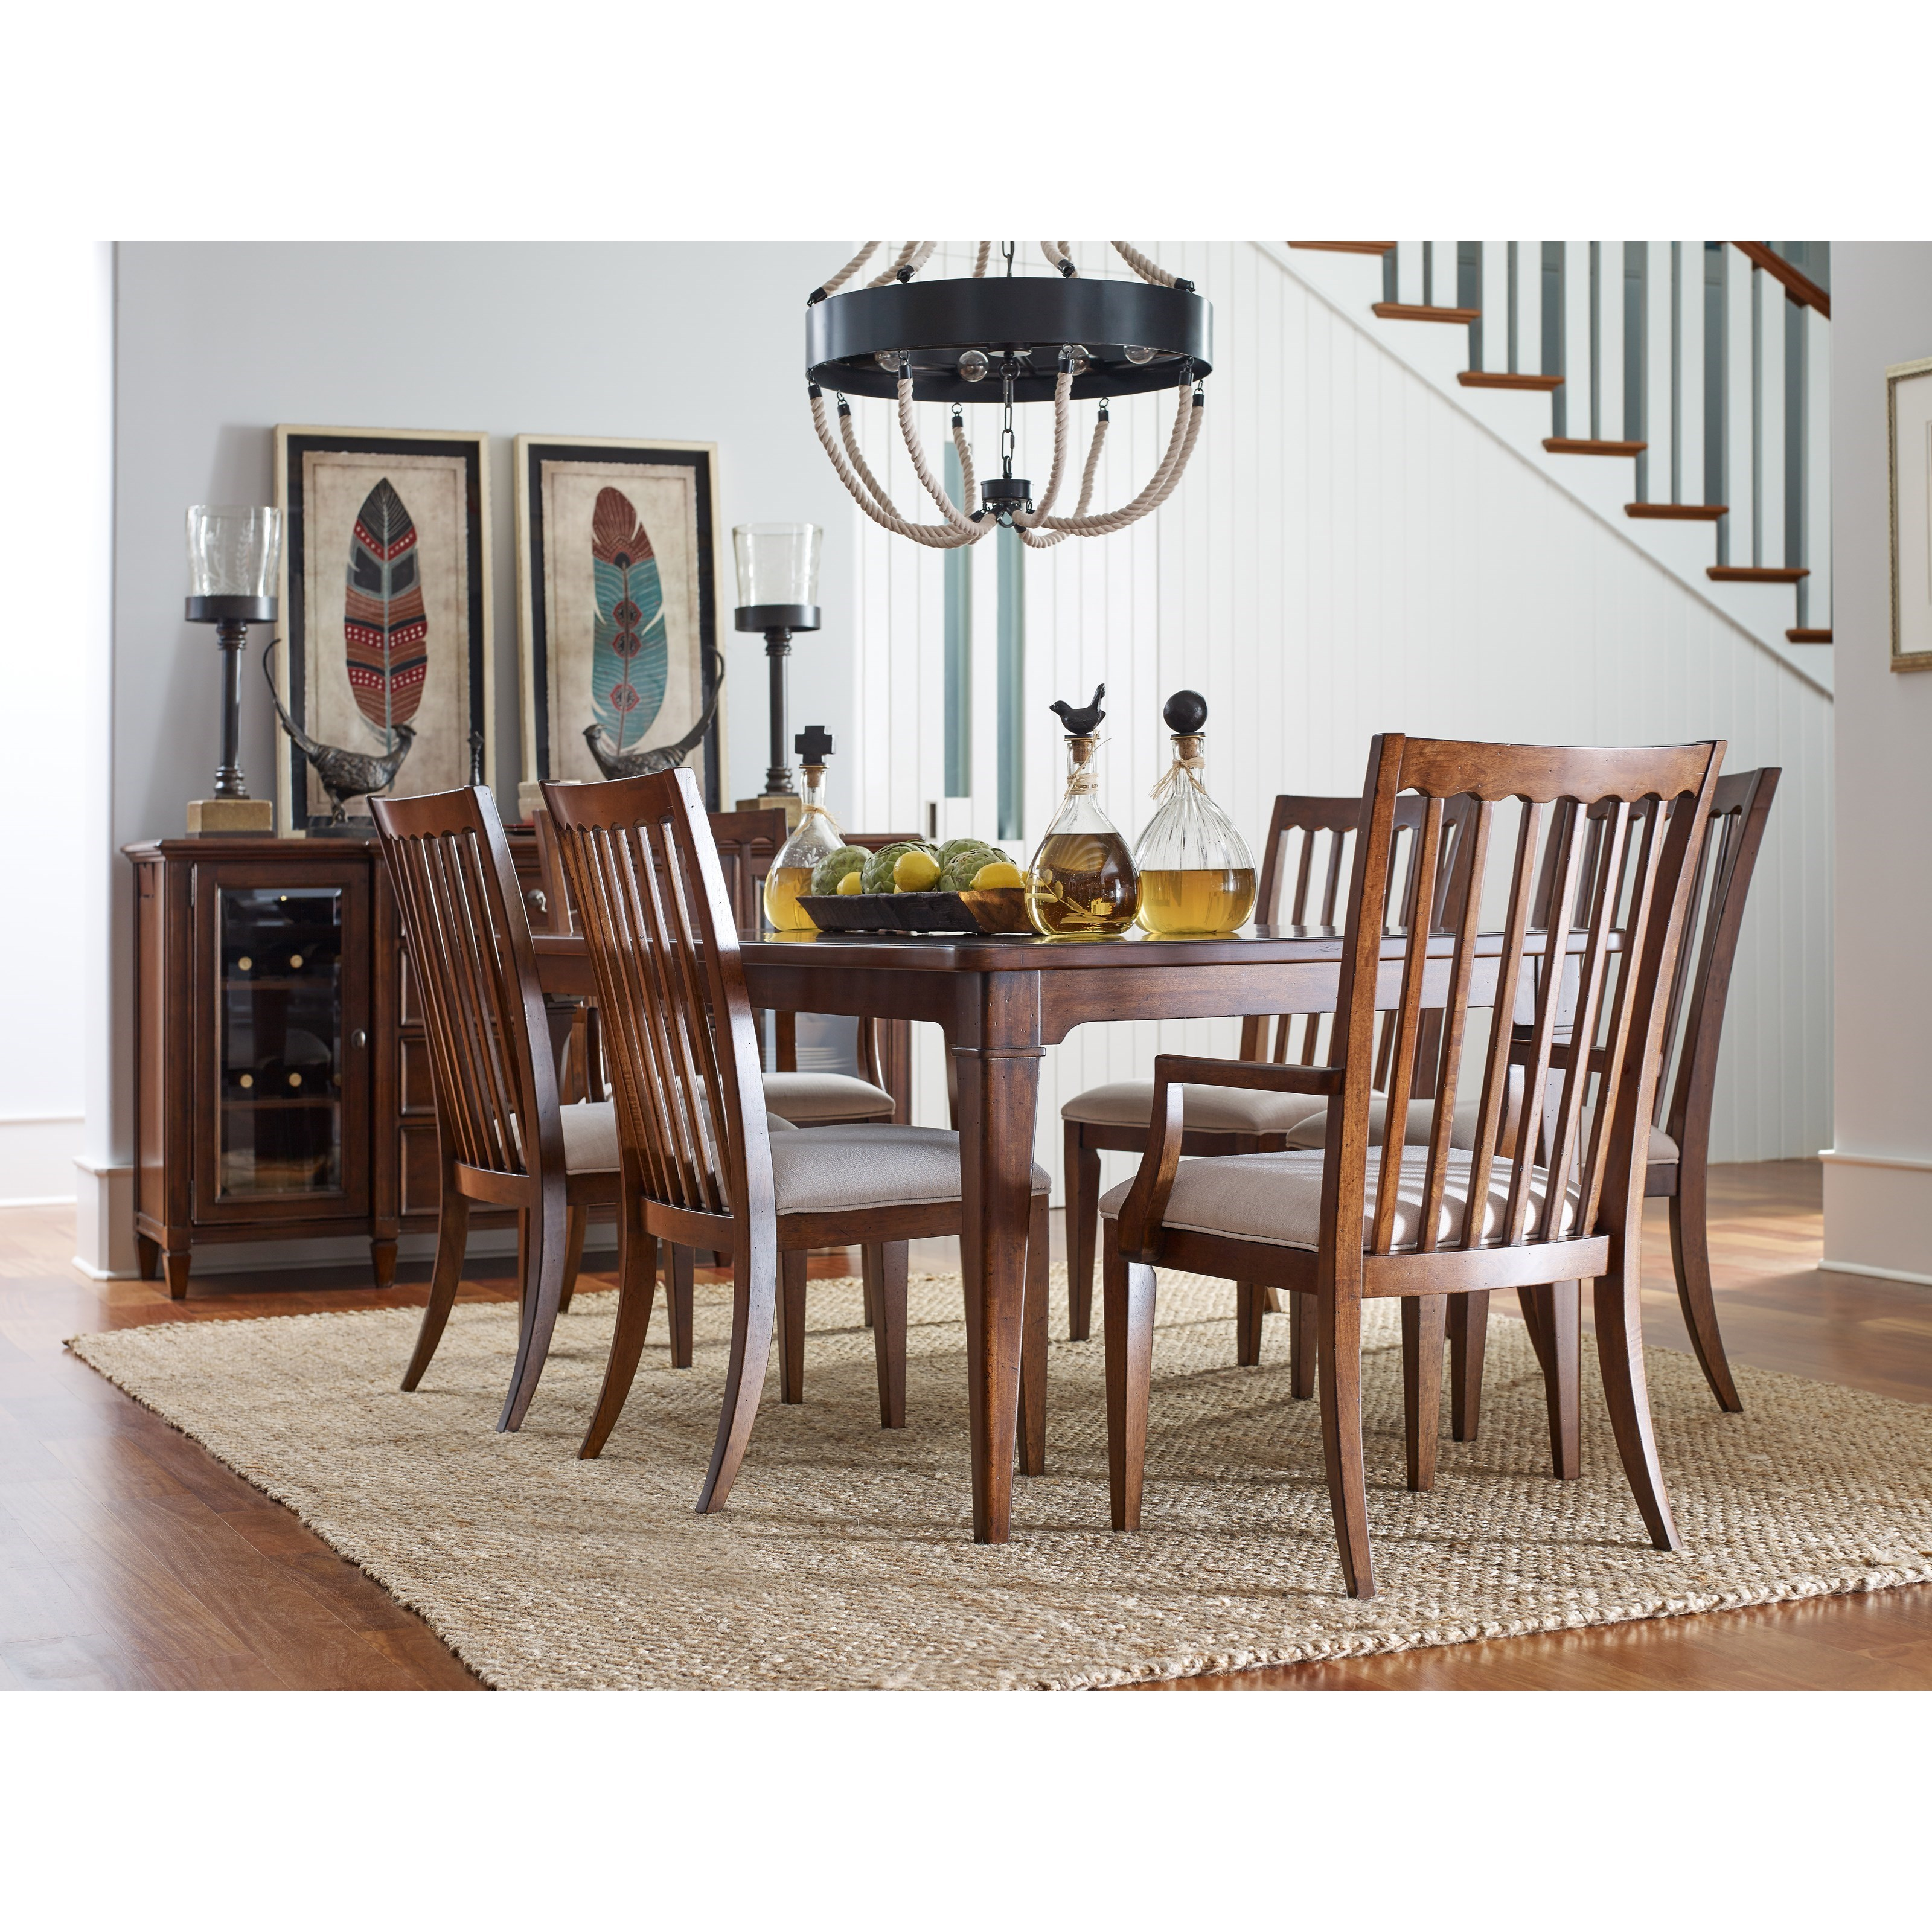 Rachael Ray Home by Legacy Classic Upstate Formal Dining Room Group - Item Number: 6040 Dining Room Group 4